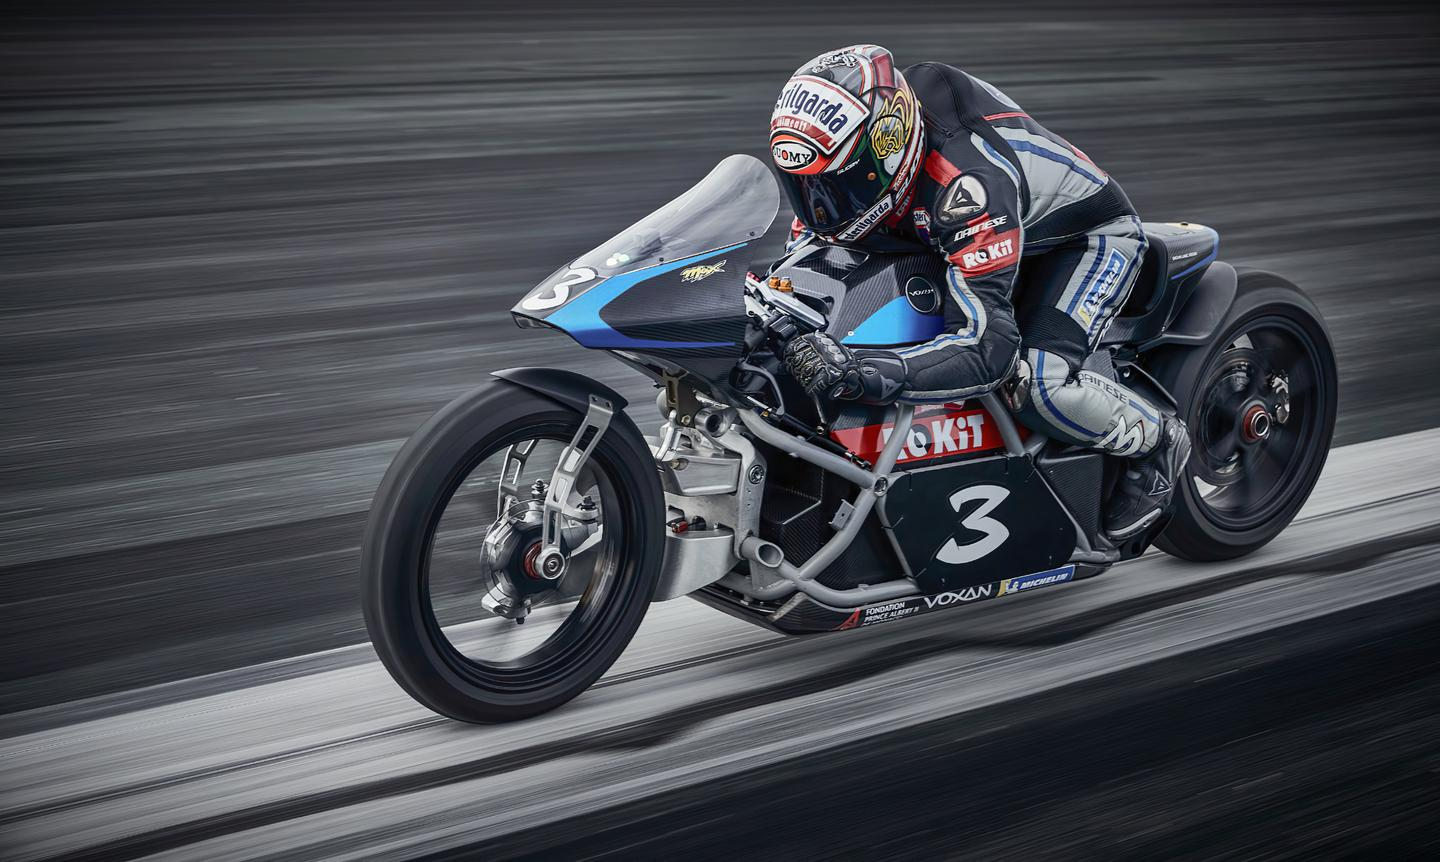 Max Biaggi aboard the Voxan Wattman in its non-streamlined form – the team claimed 11 world speed records for electric motorcycles